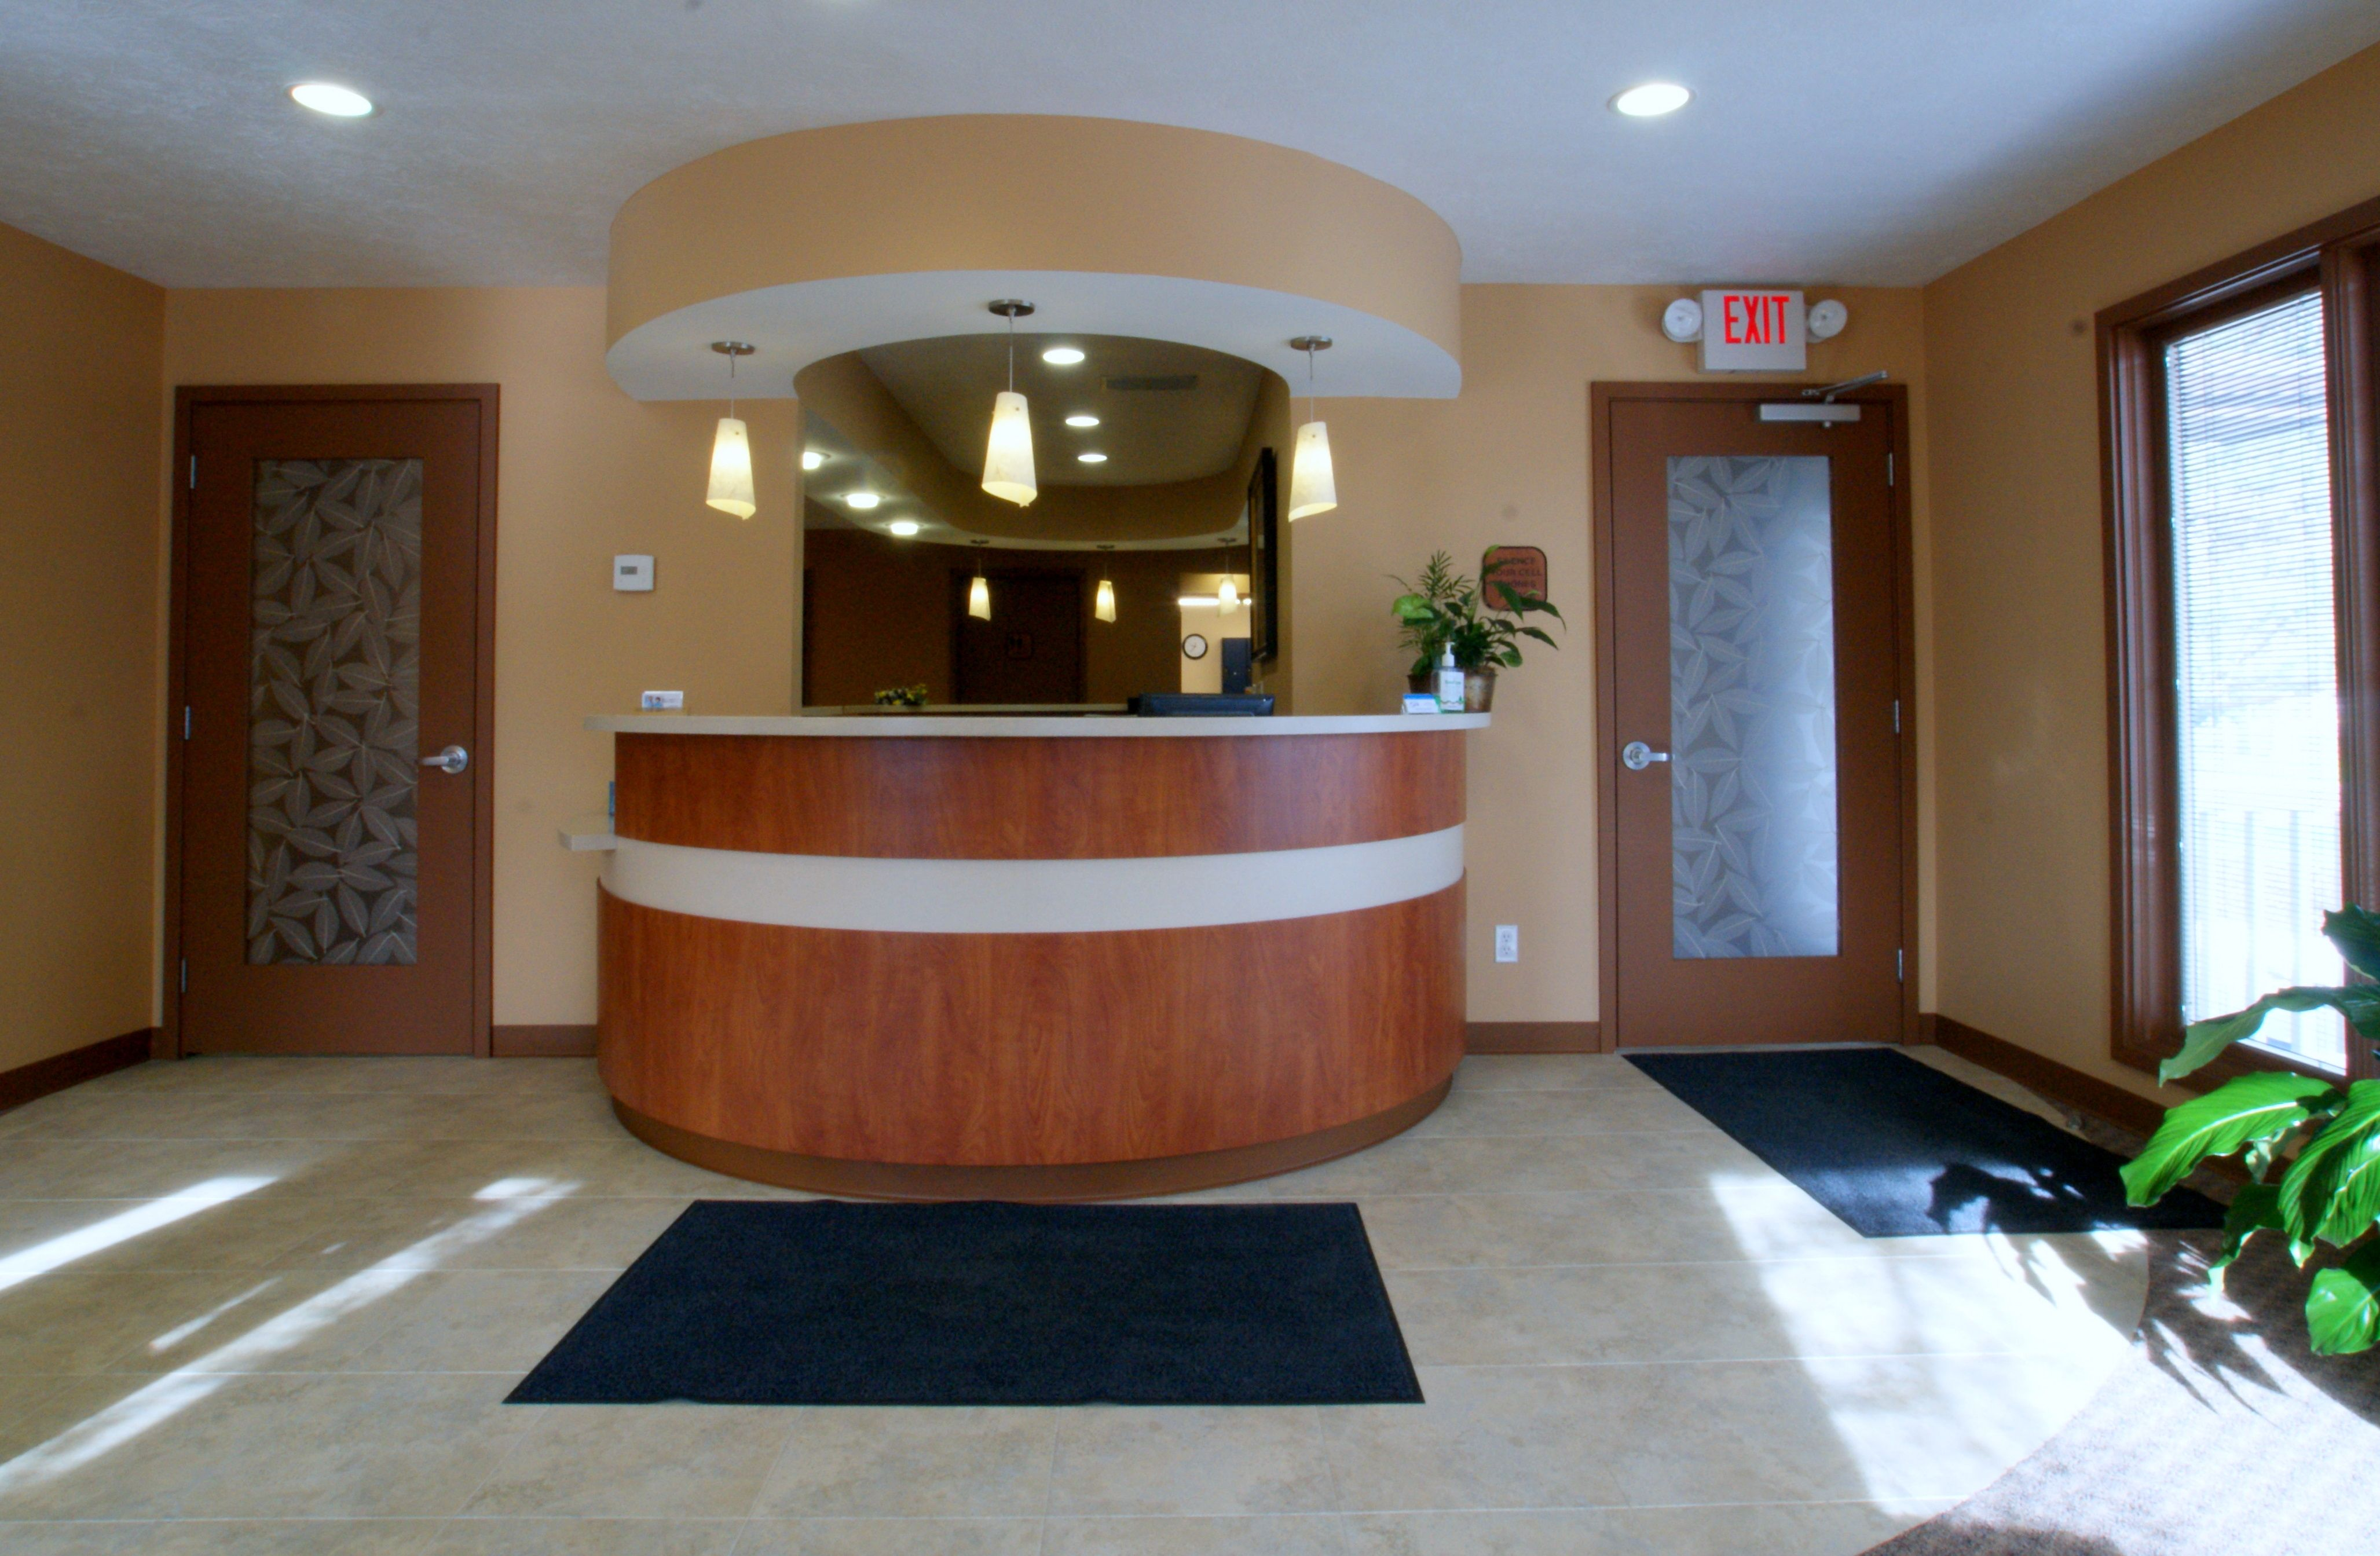 dental office reception design | Quick Look at a Dental Office Design Element - Küster Dental Weblog